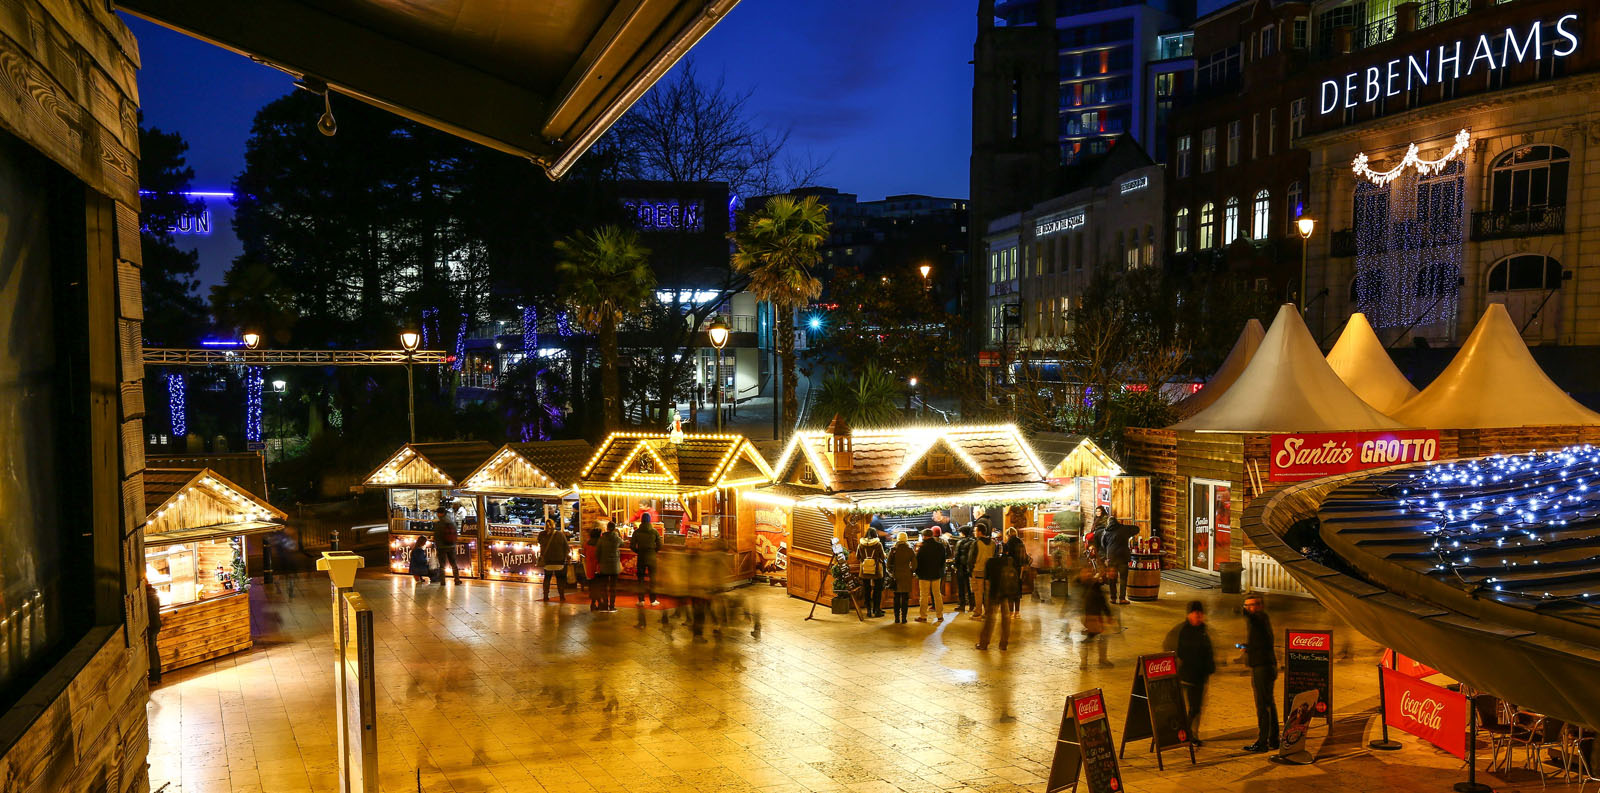 A night view of Bournemouth's Christmas Market.